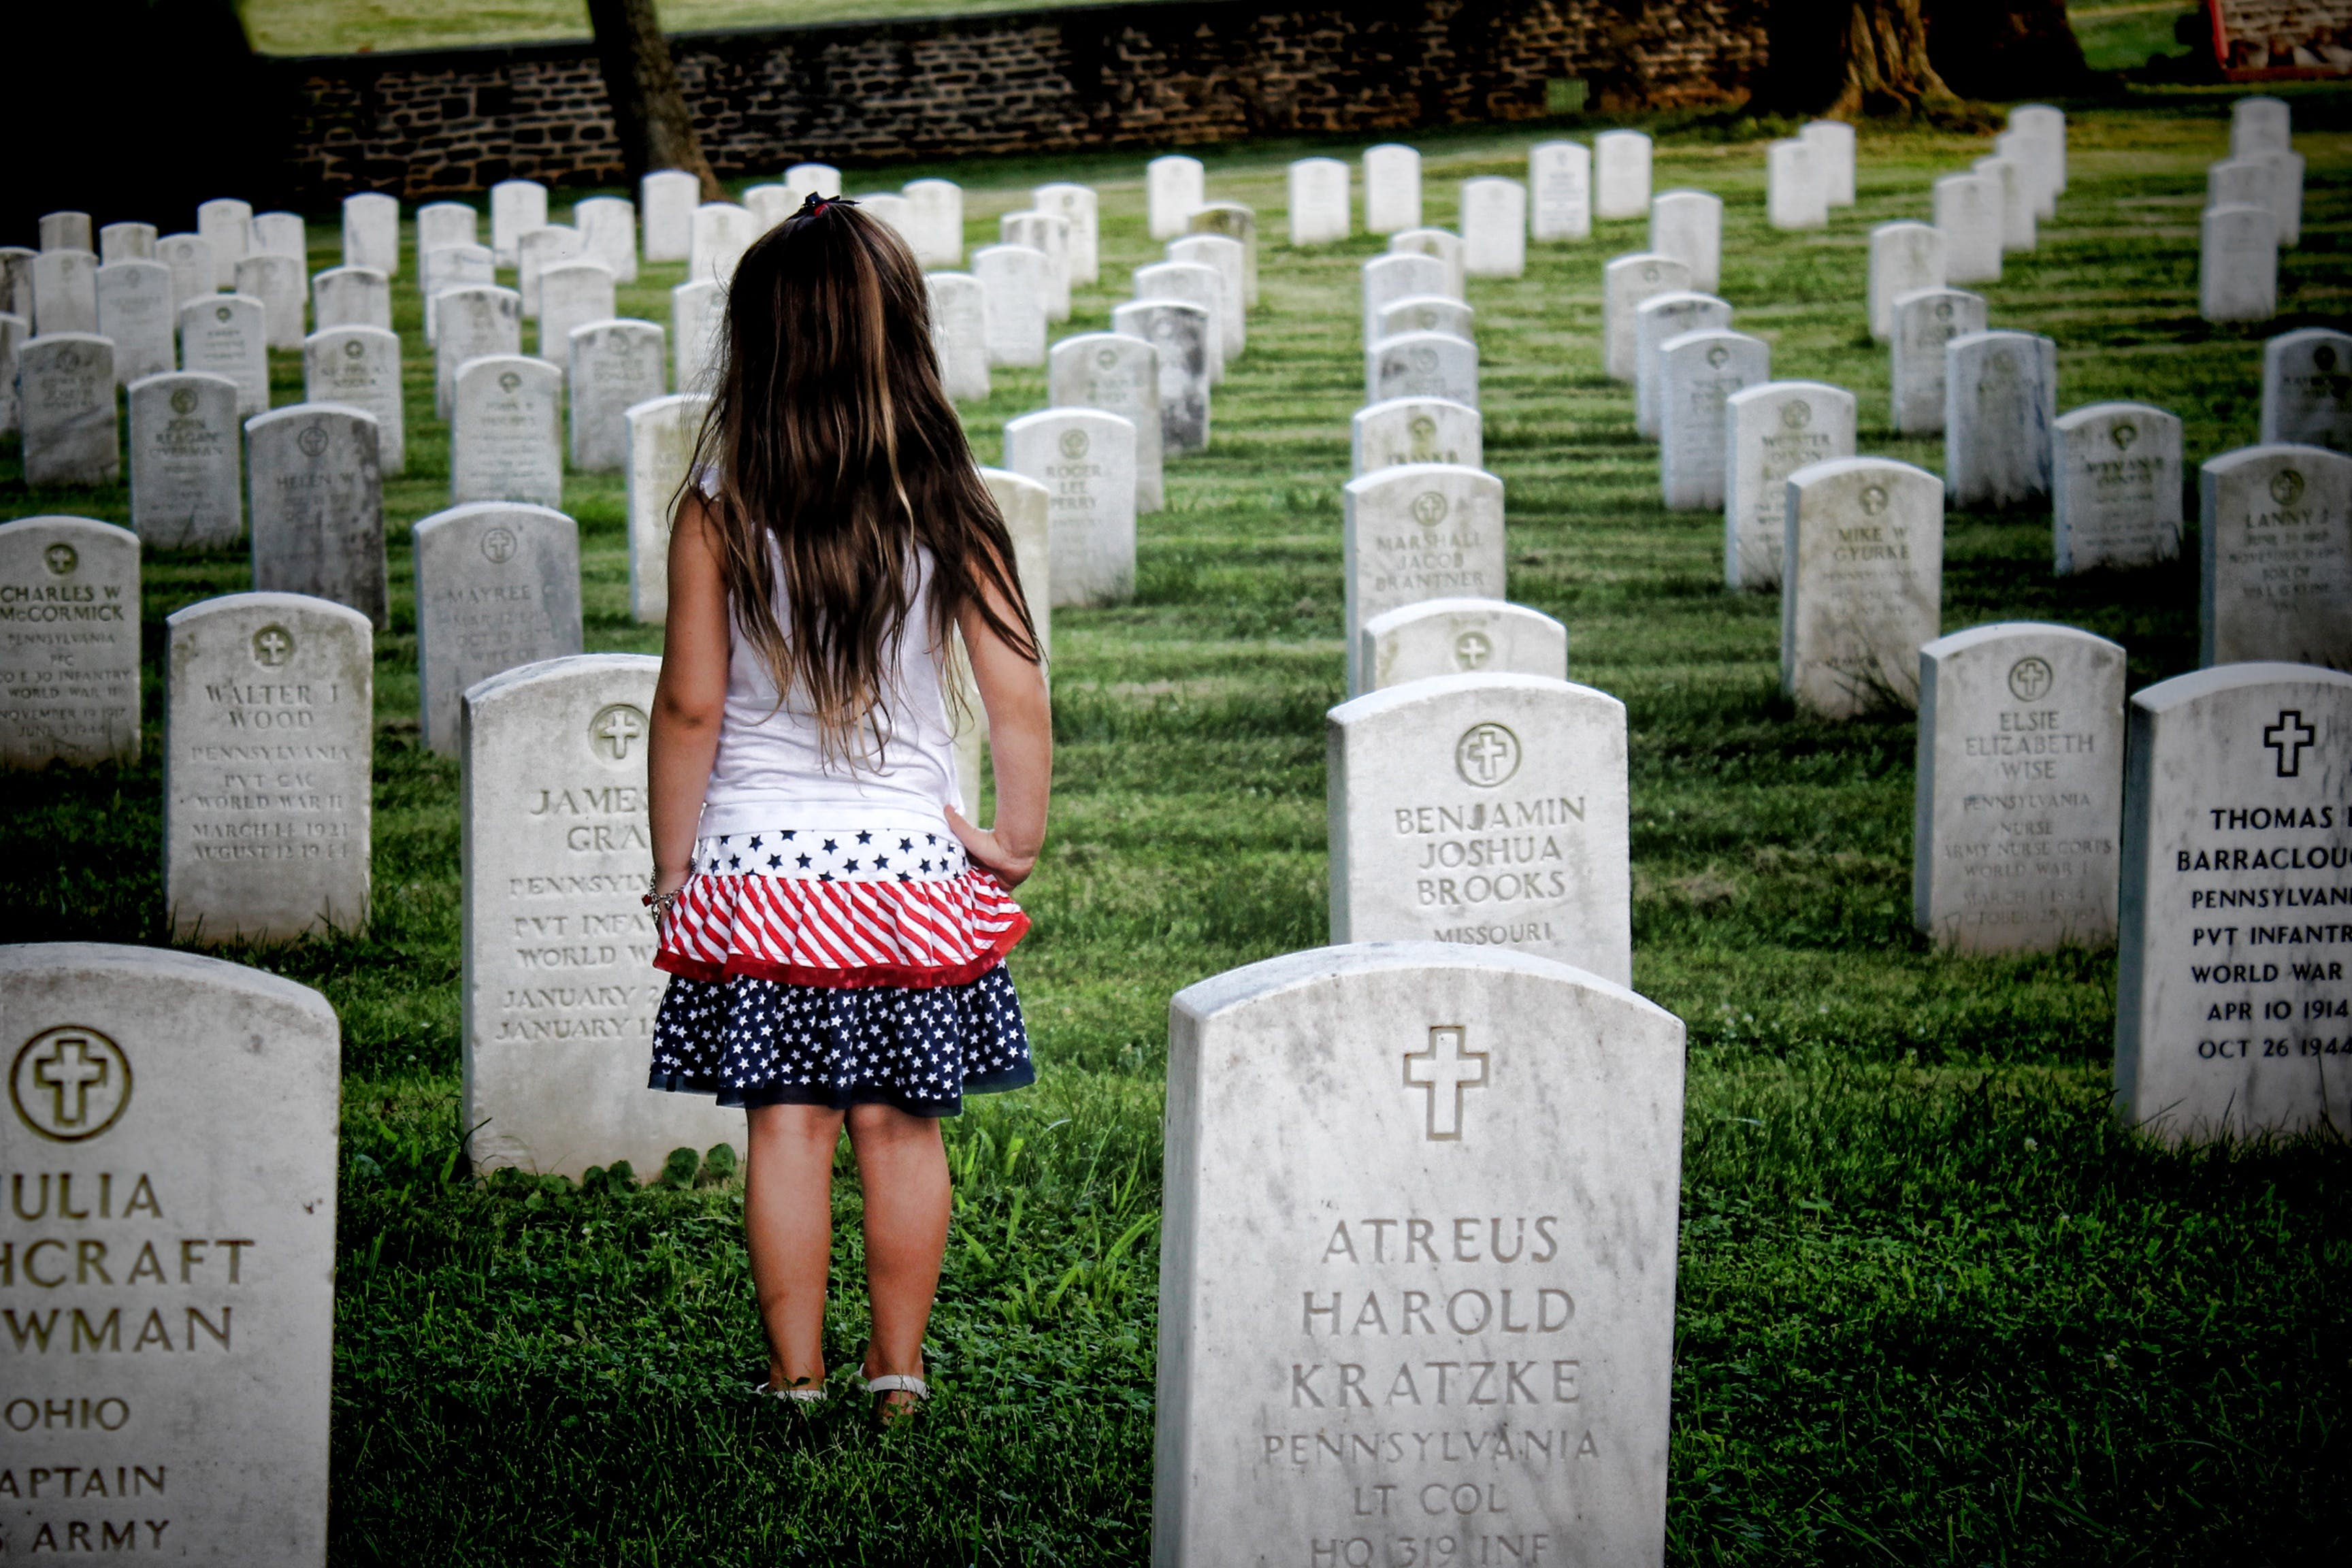 Girl Surrounded by Gravestones